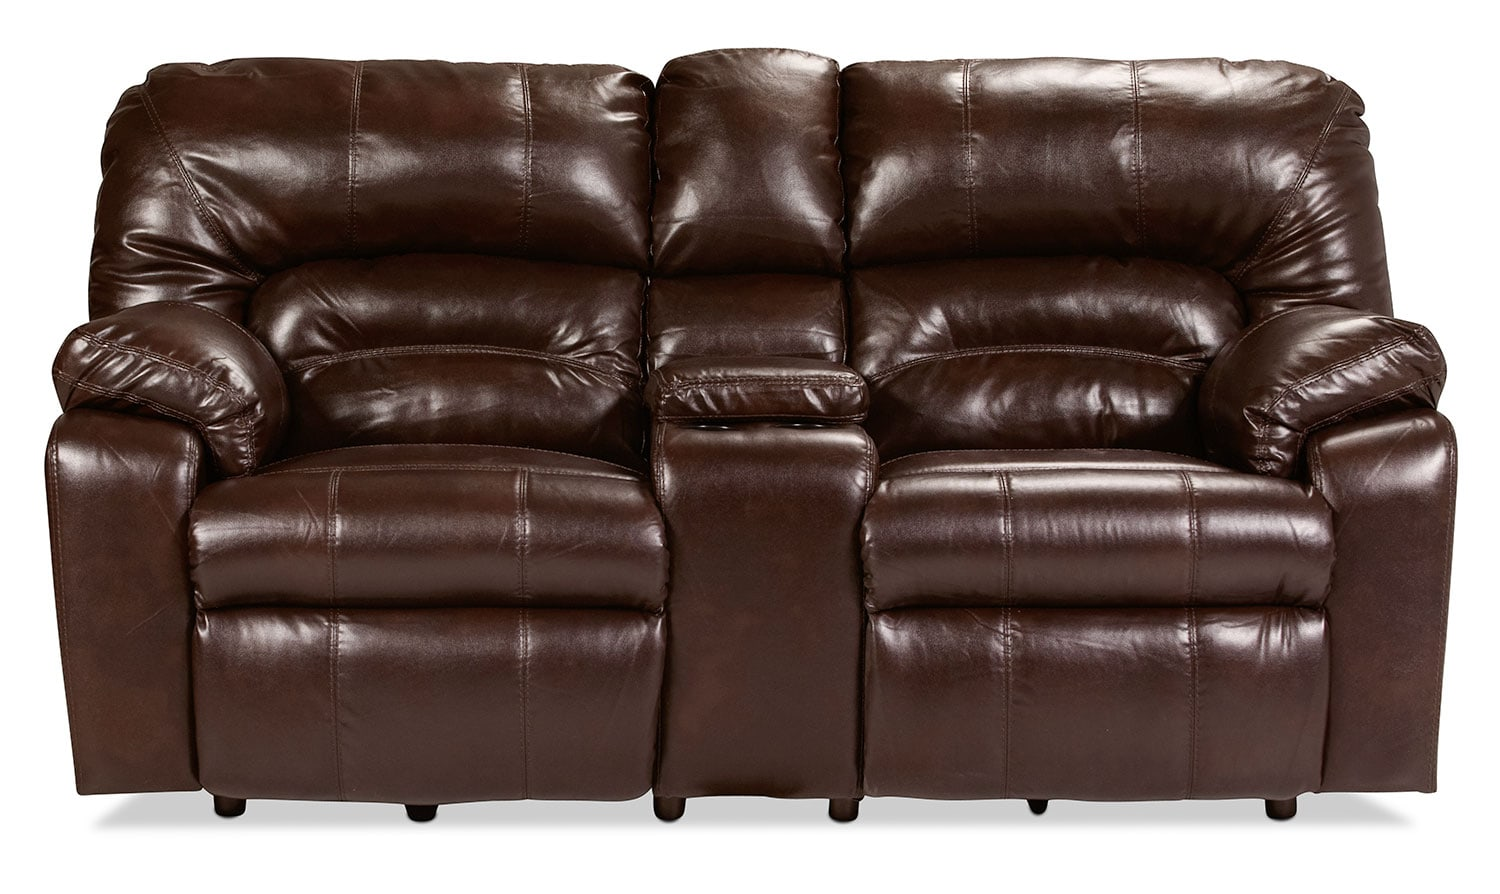 Unwind Reclining Loveseat with Console - Java